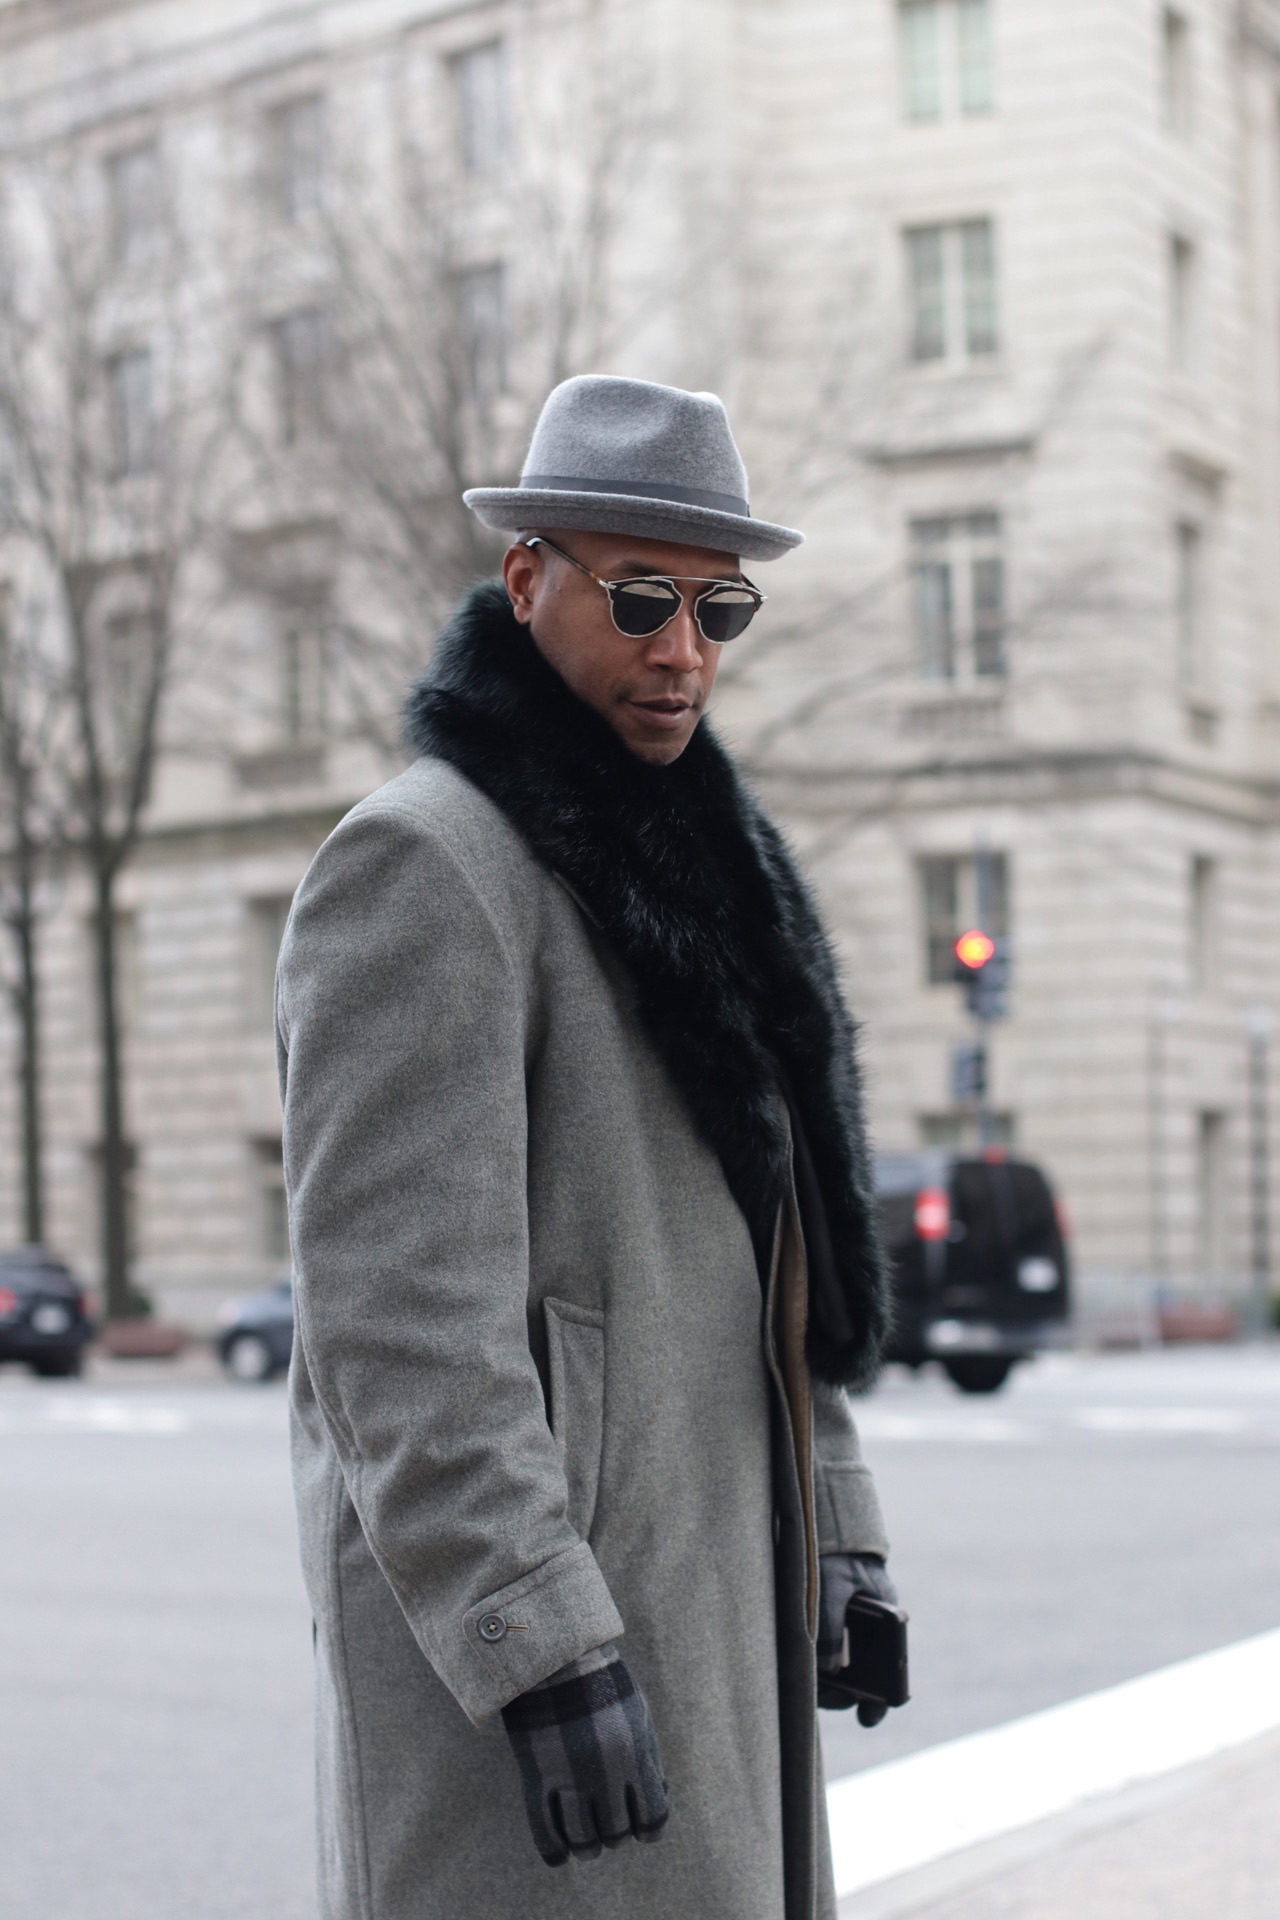 381efe2d80ab Mid Winter is the time to pick up a great winter coat - The ...